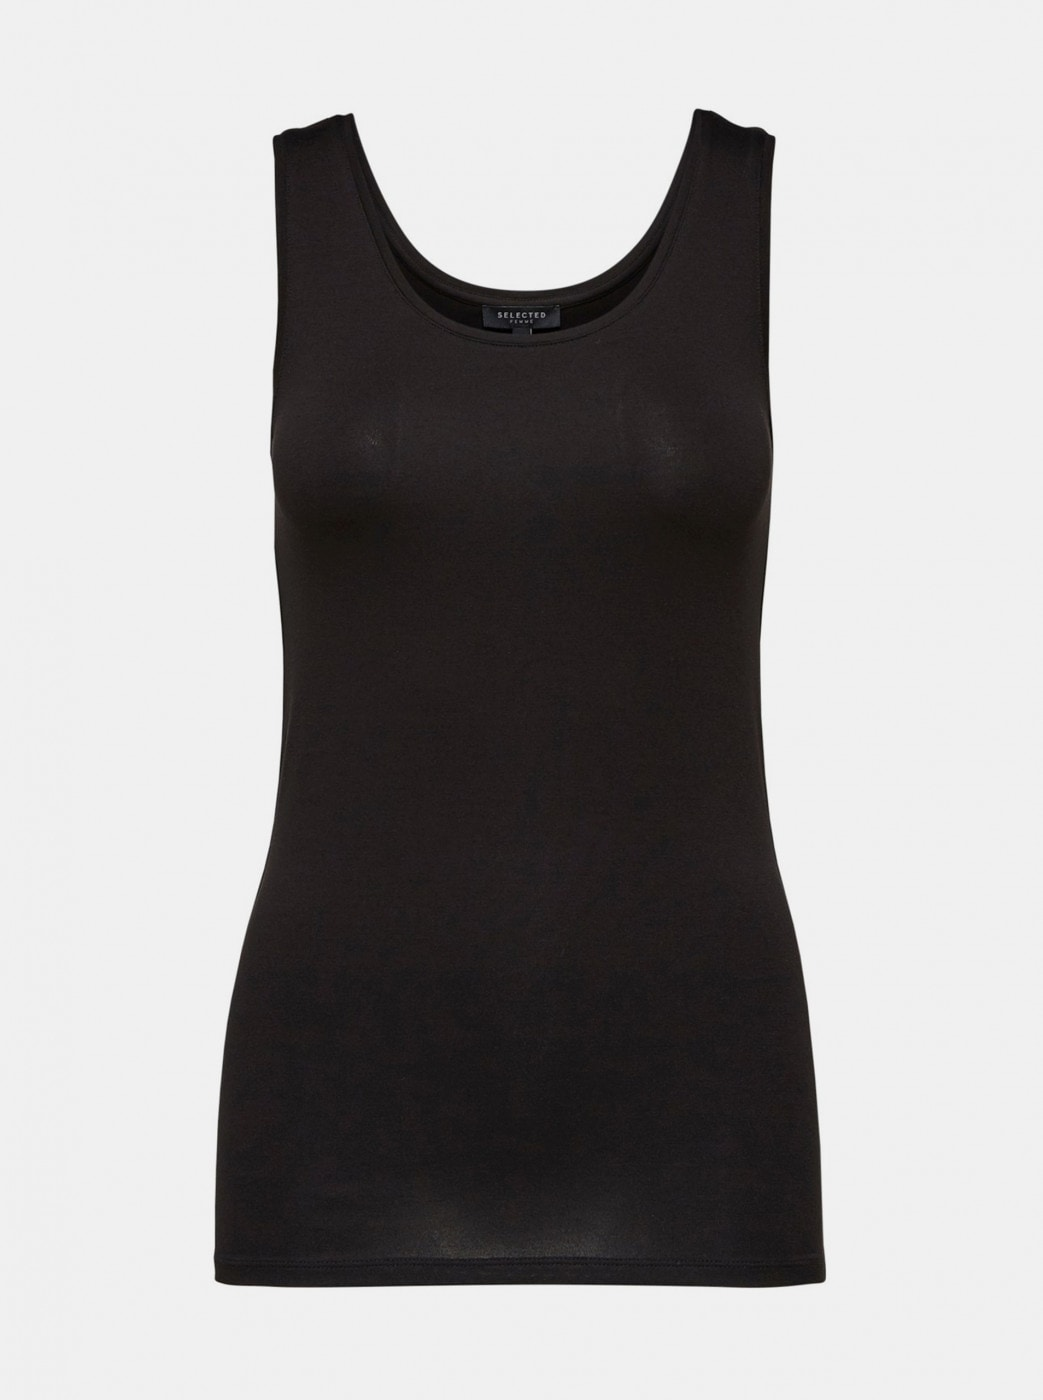 Black Basic Tank Top Selected Femme Mio